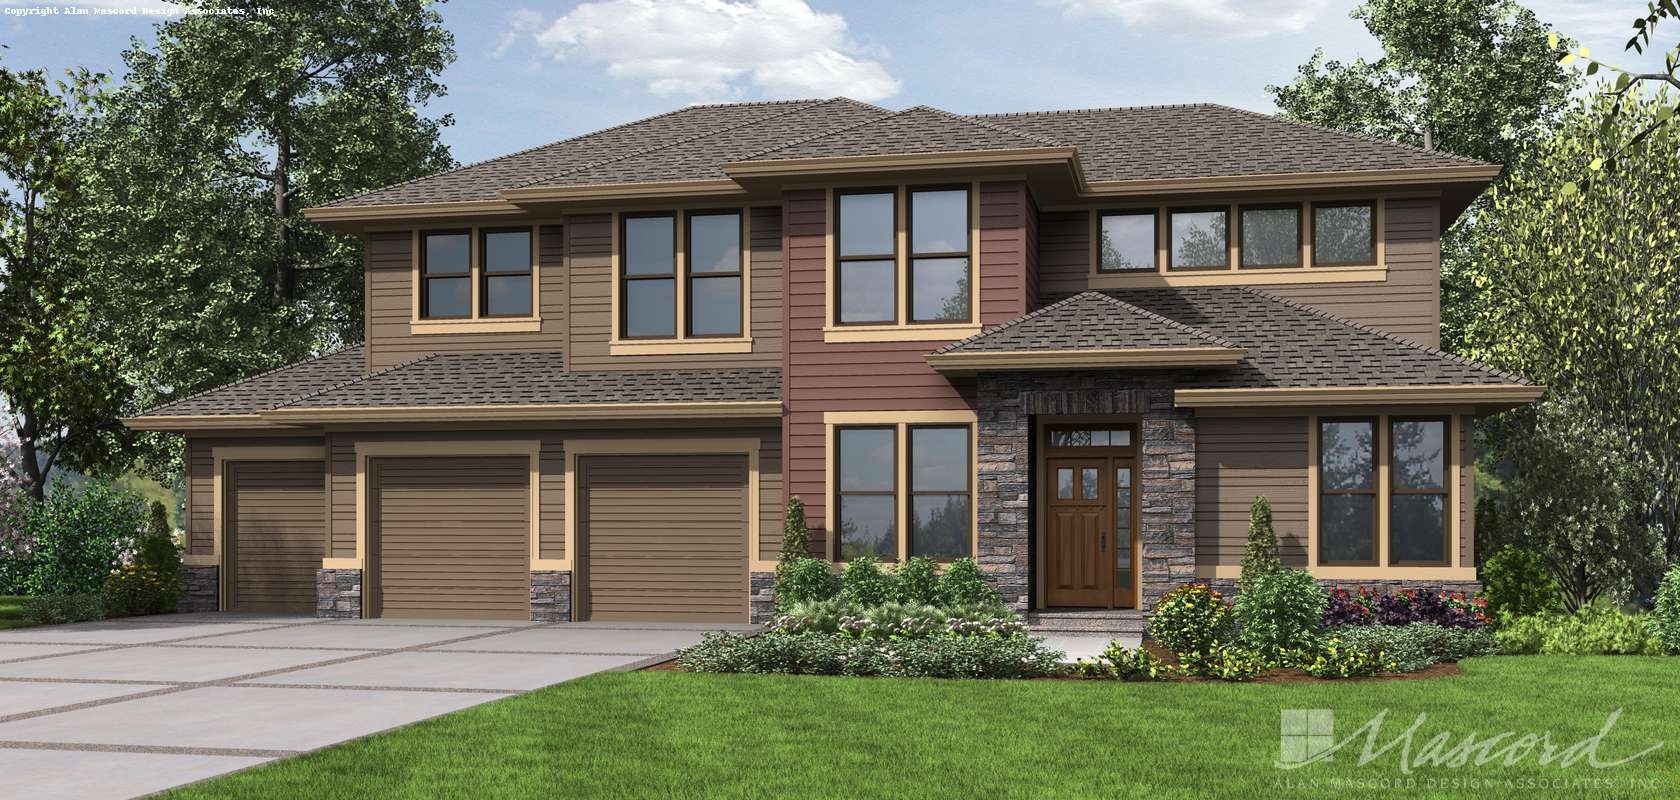 Mascord House Plan 23104: The Boyega